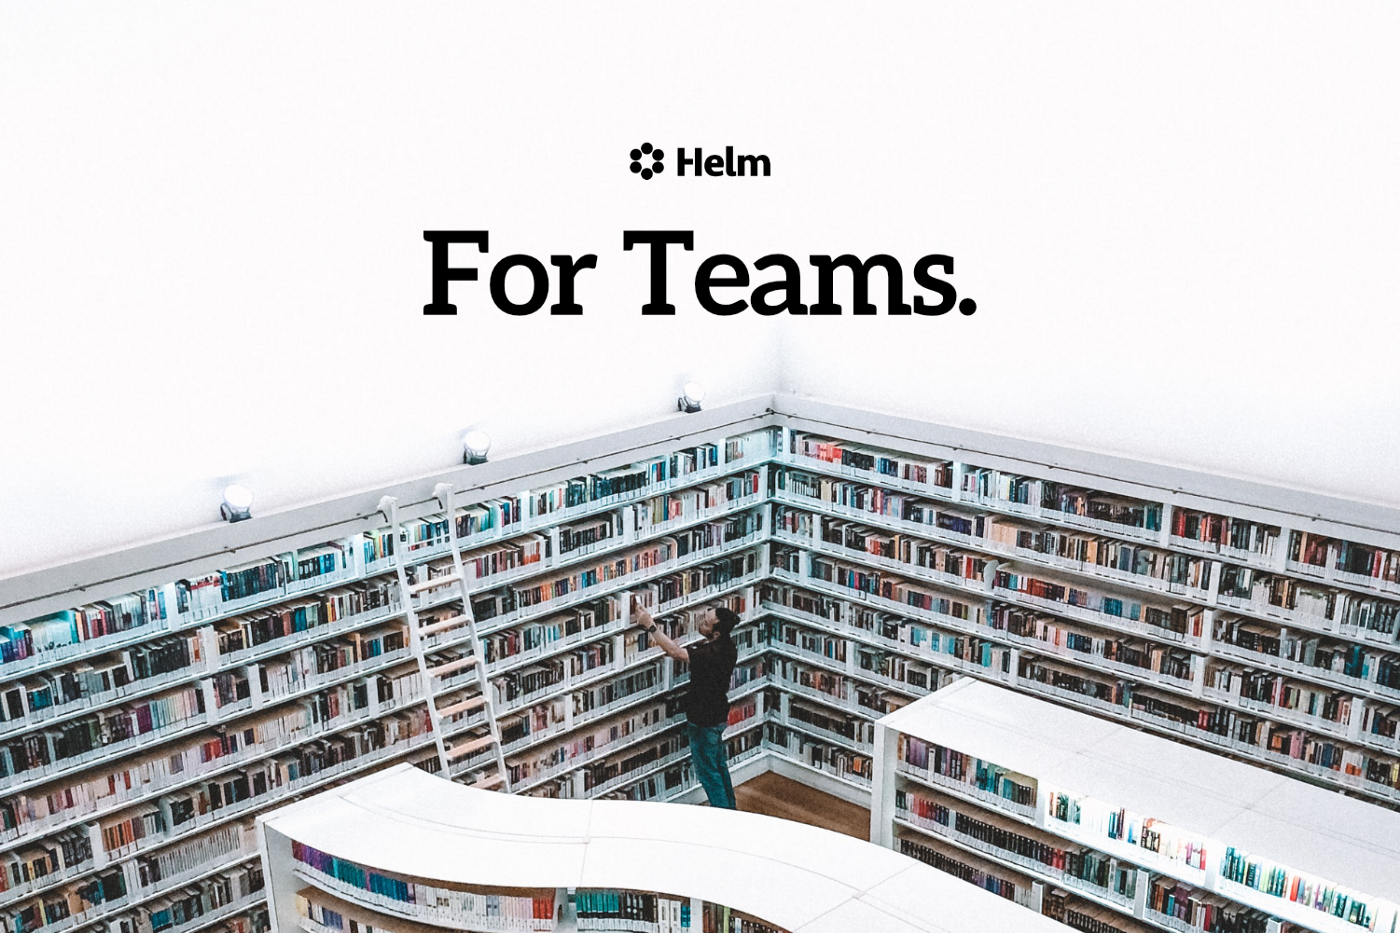 Introducing Helm Library